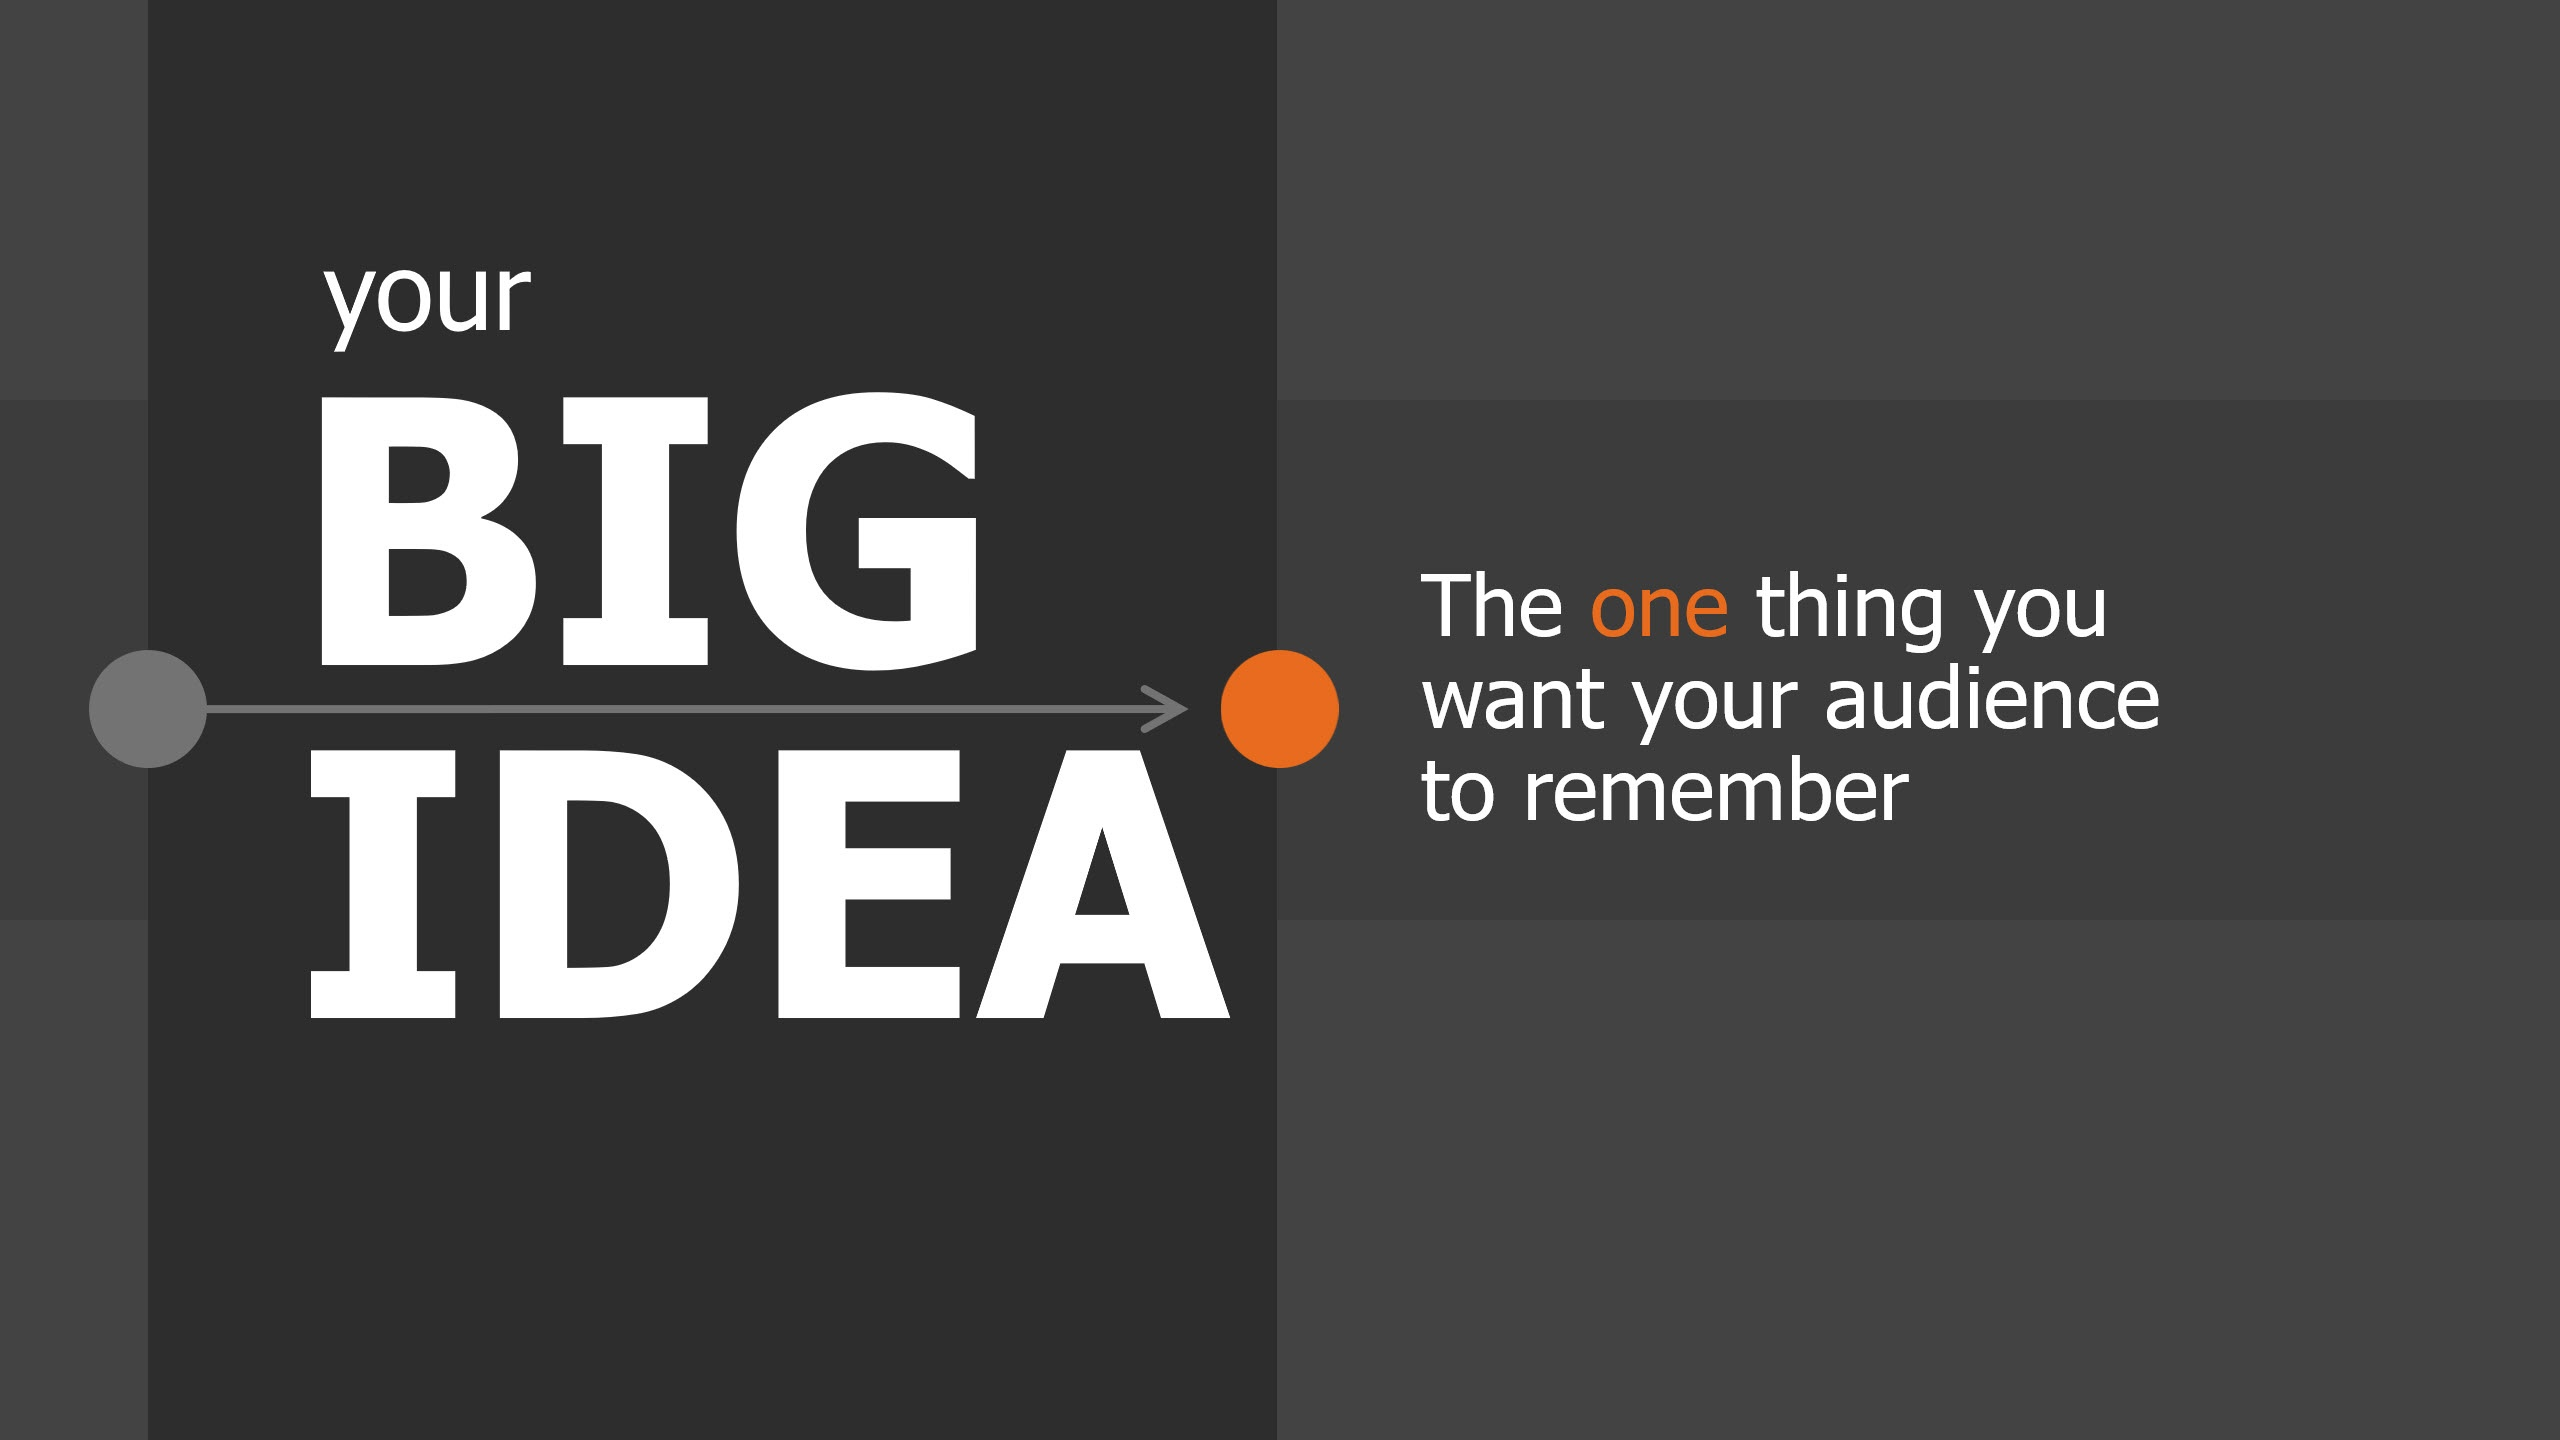 BIG Idea in a presentation